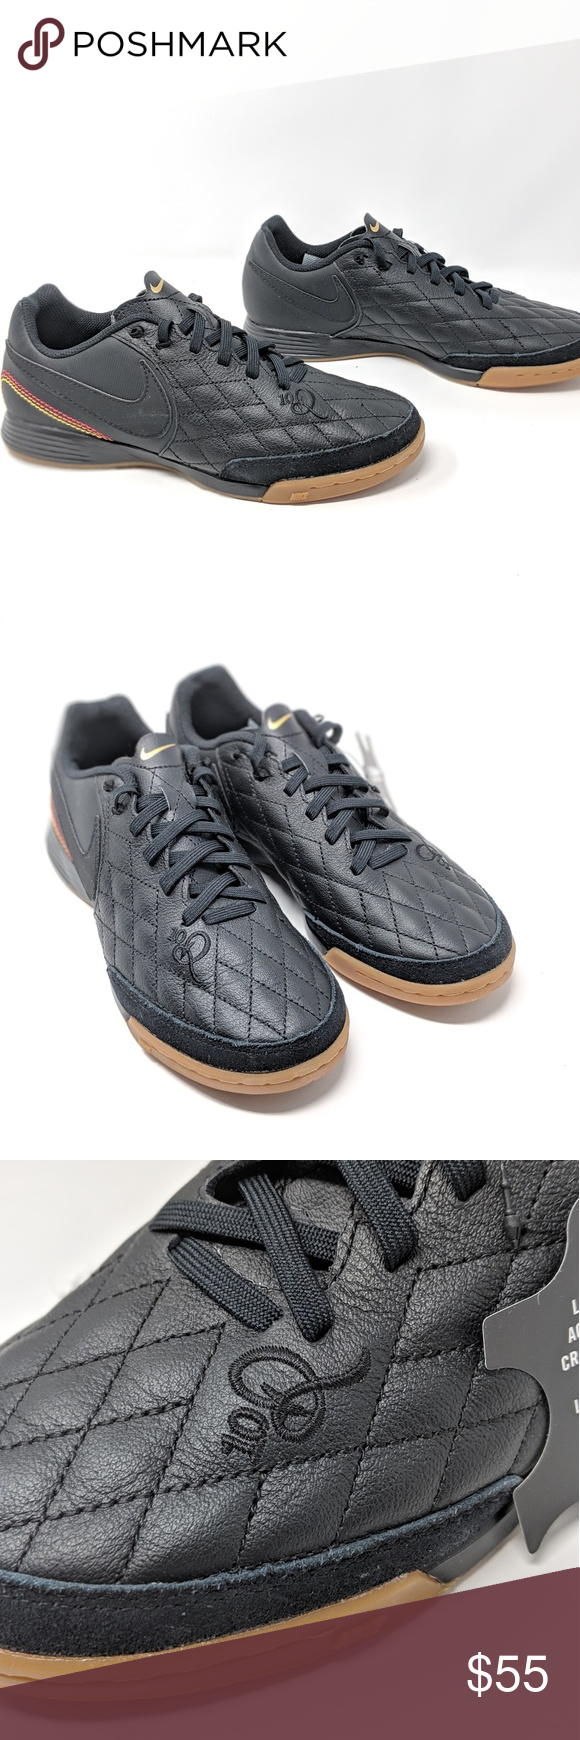 uk availability a0378 d1a5c NEW Nike Tiempo Ligera IV 10R IC Ronaldinho Leathe NEW Nike Tiempo Ligera  IV 10R IC